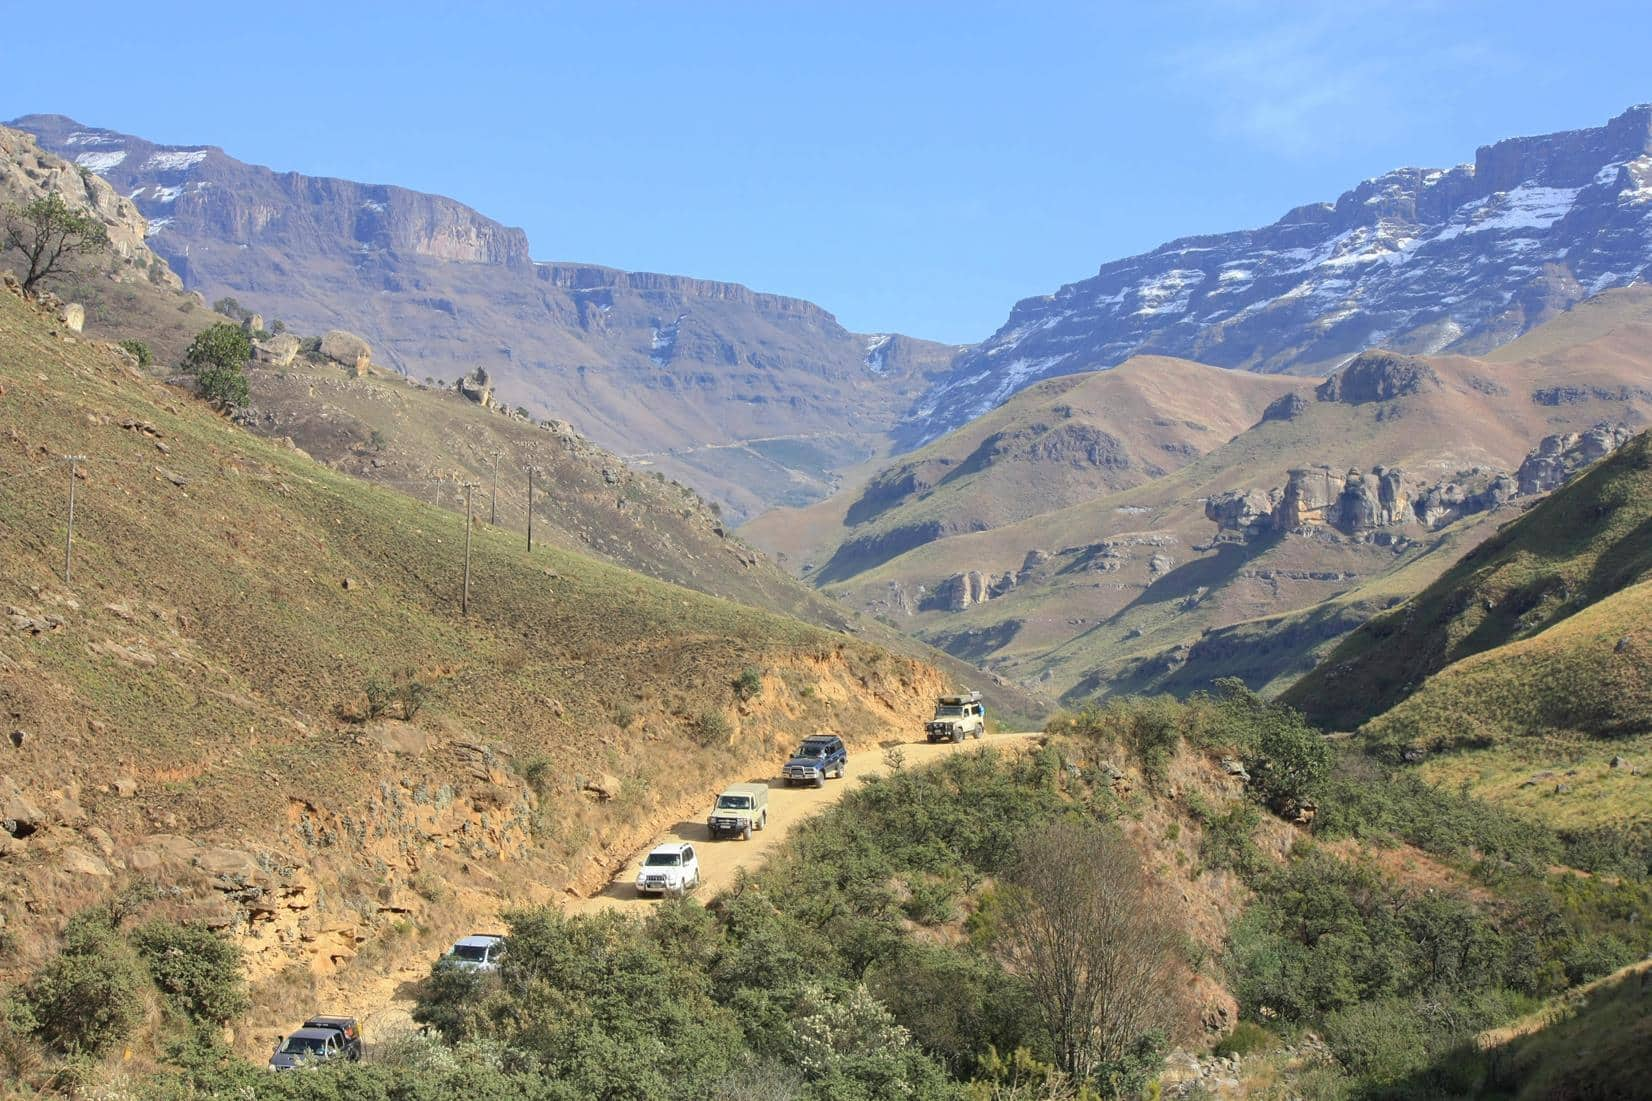 Vehicles coming down Sani Pass.